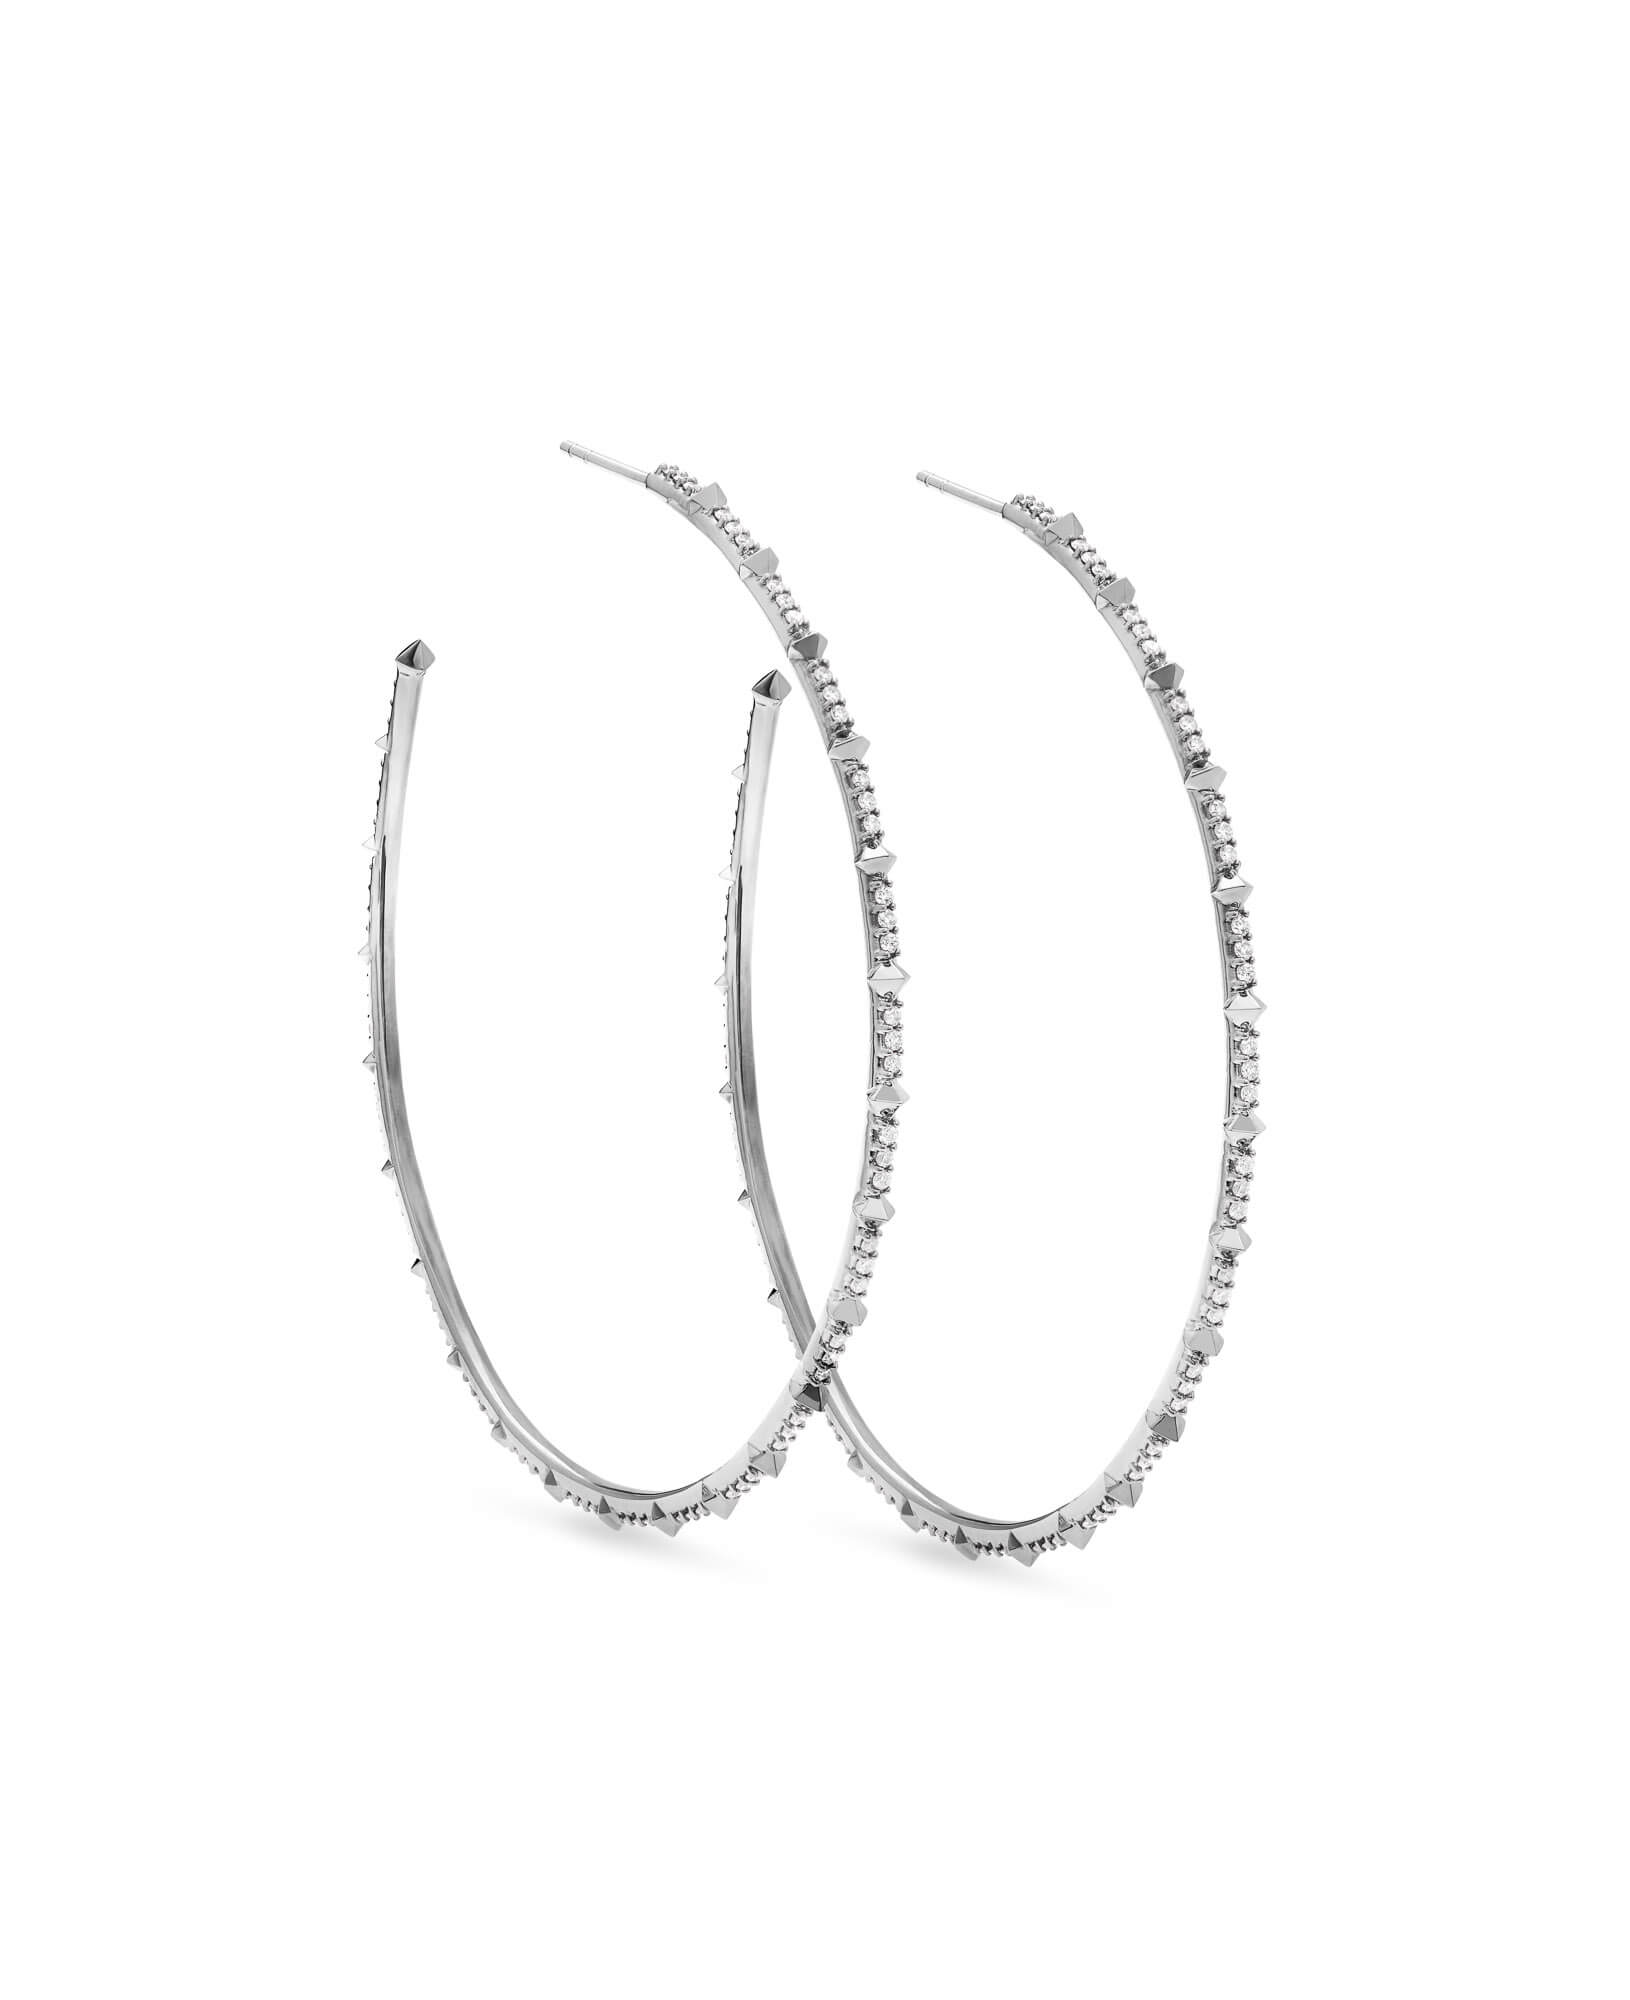 Nia 14k White Gold Earrings in White Diamond